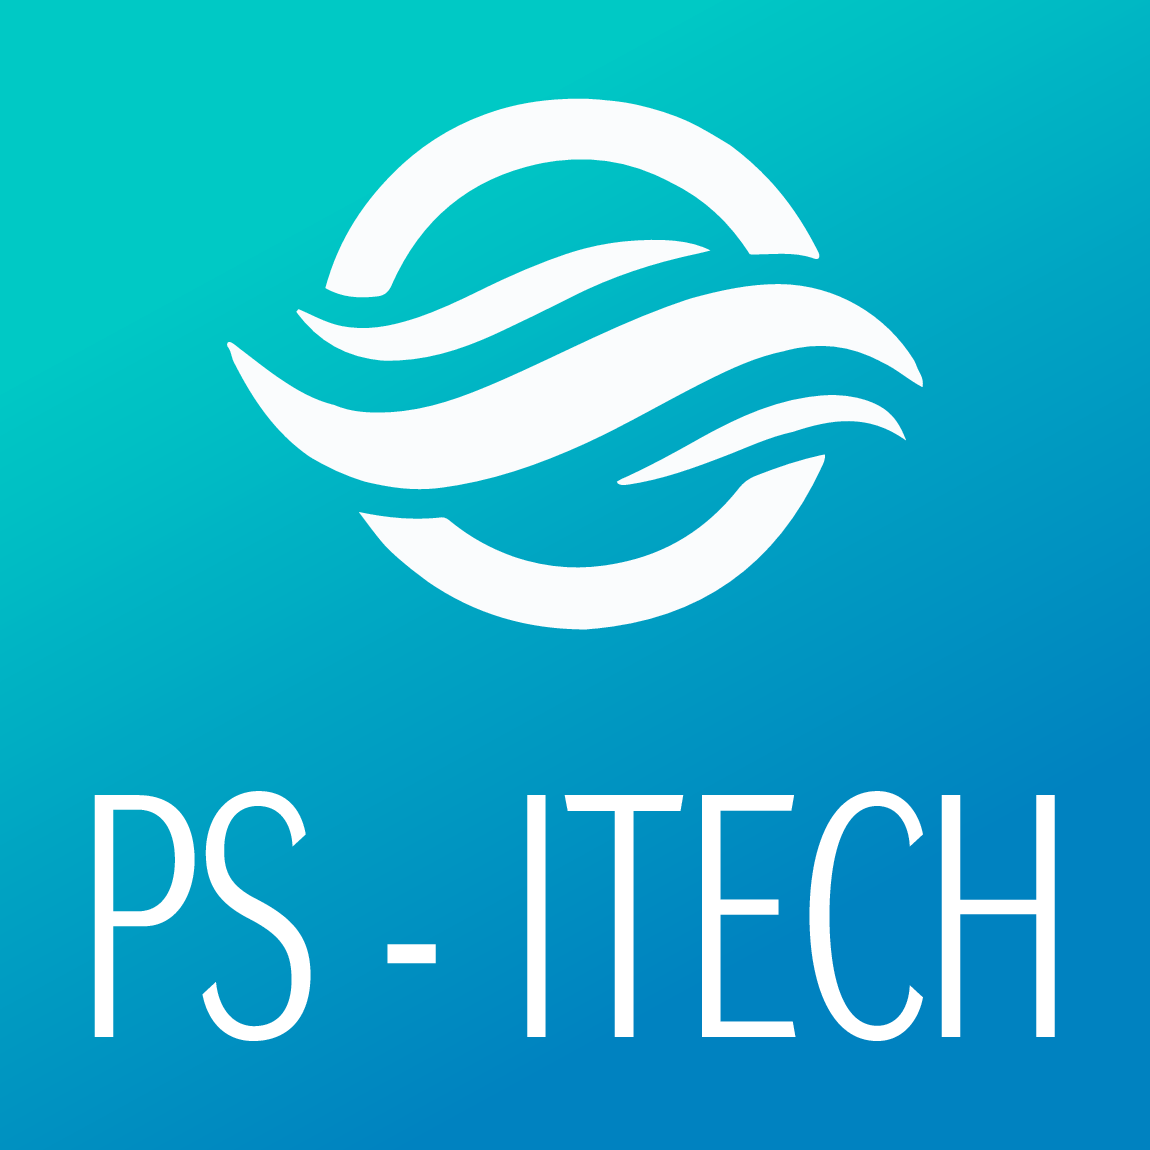 PS-ITECH